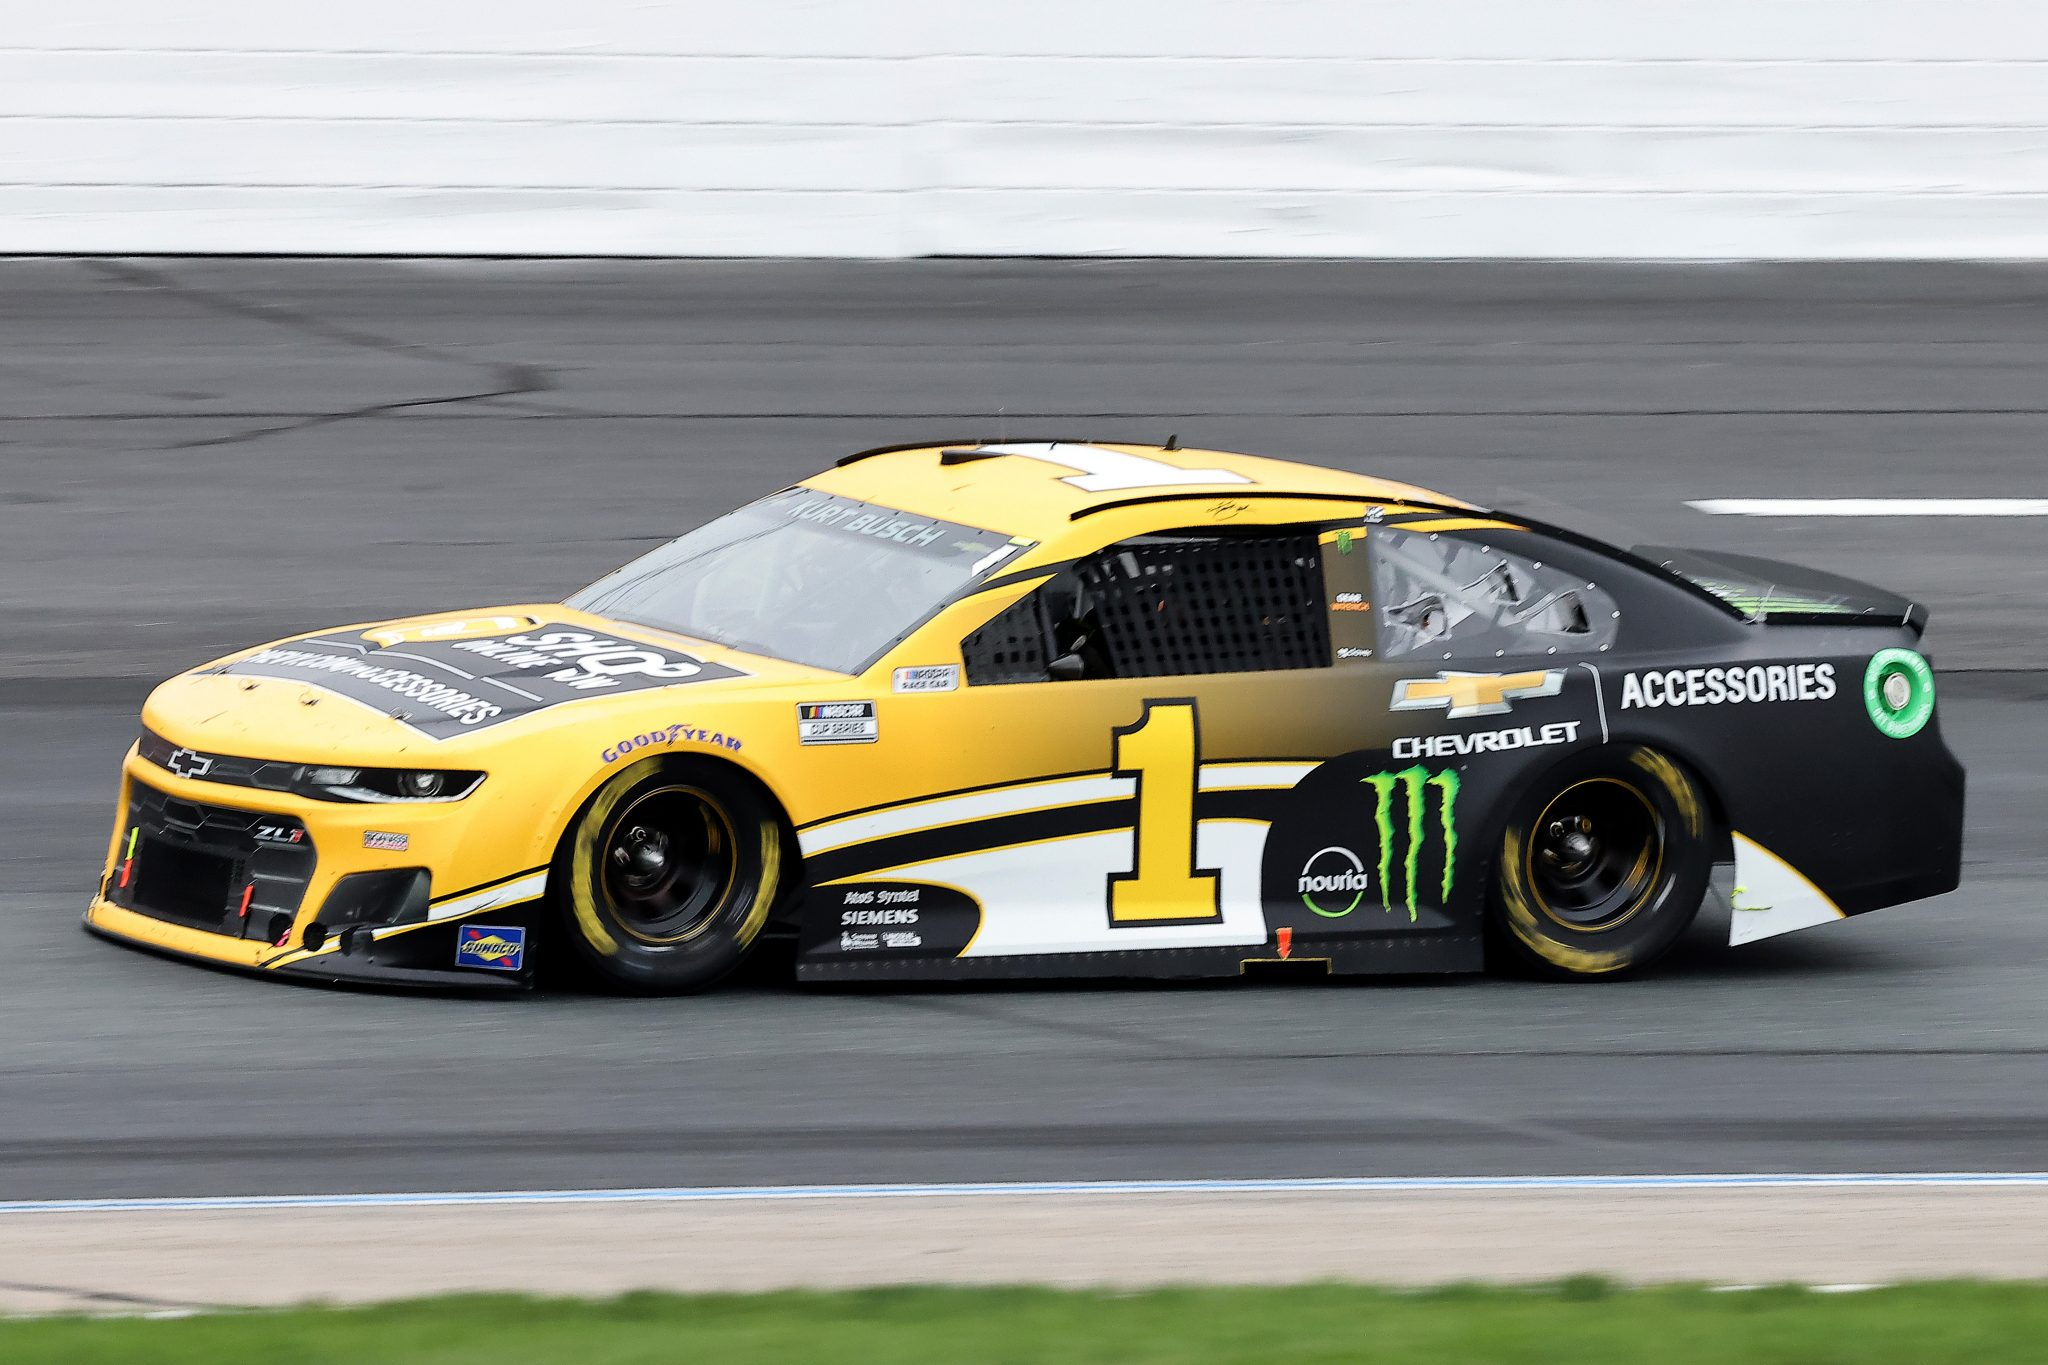 LOUDON, NEW HAMPSHIRE - JULY 18: Kurt Busch, driver of the #1 Chevy Accessories Chevrolet, drives during the NASCAR Cup Series Foxwoods Resort Casino 301 at New Hampshire Motor Speedway on July 18, 2021 in Loudon, New Hampshire. (Photo by James Gilbert/Getty Images) | Getty Images